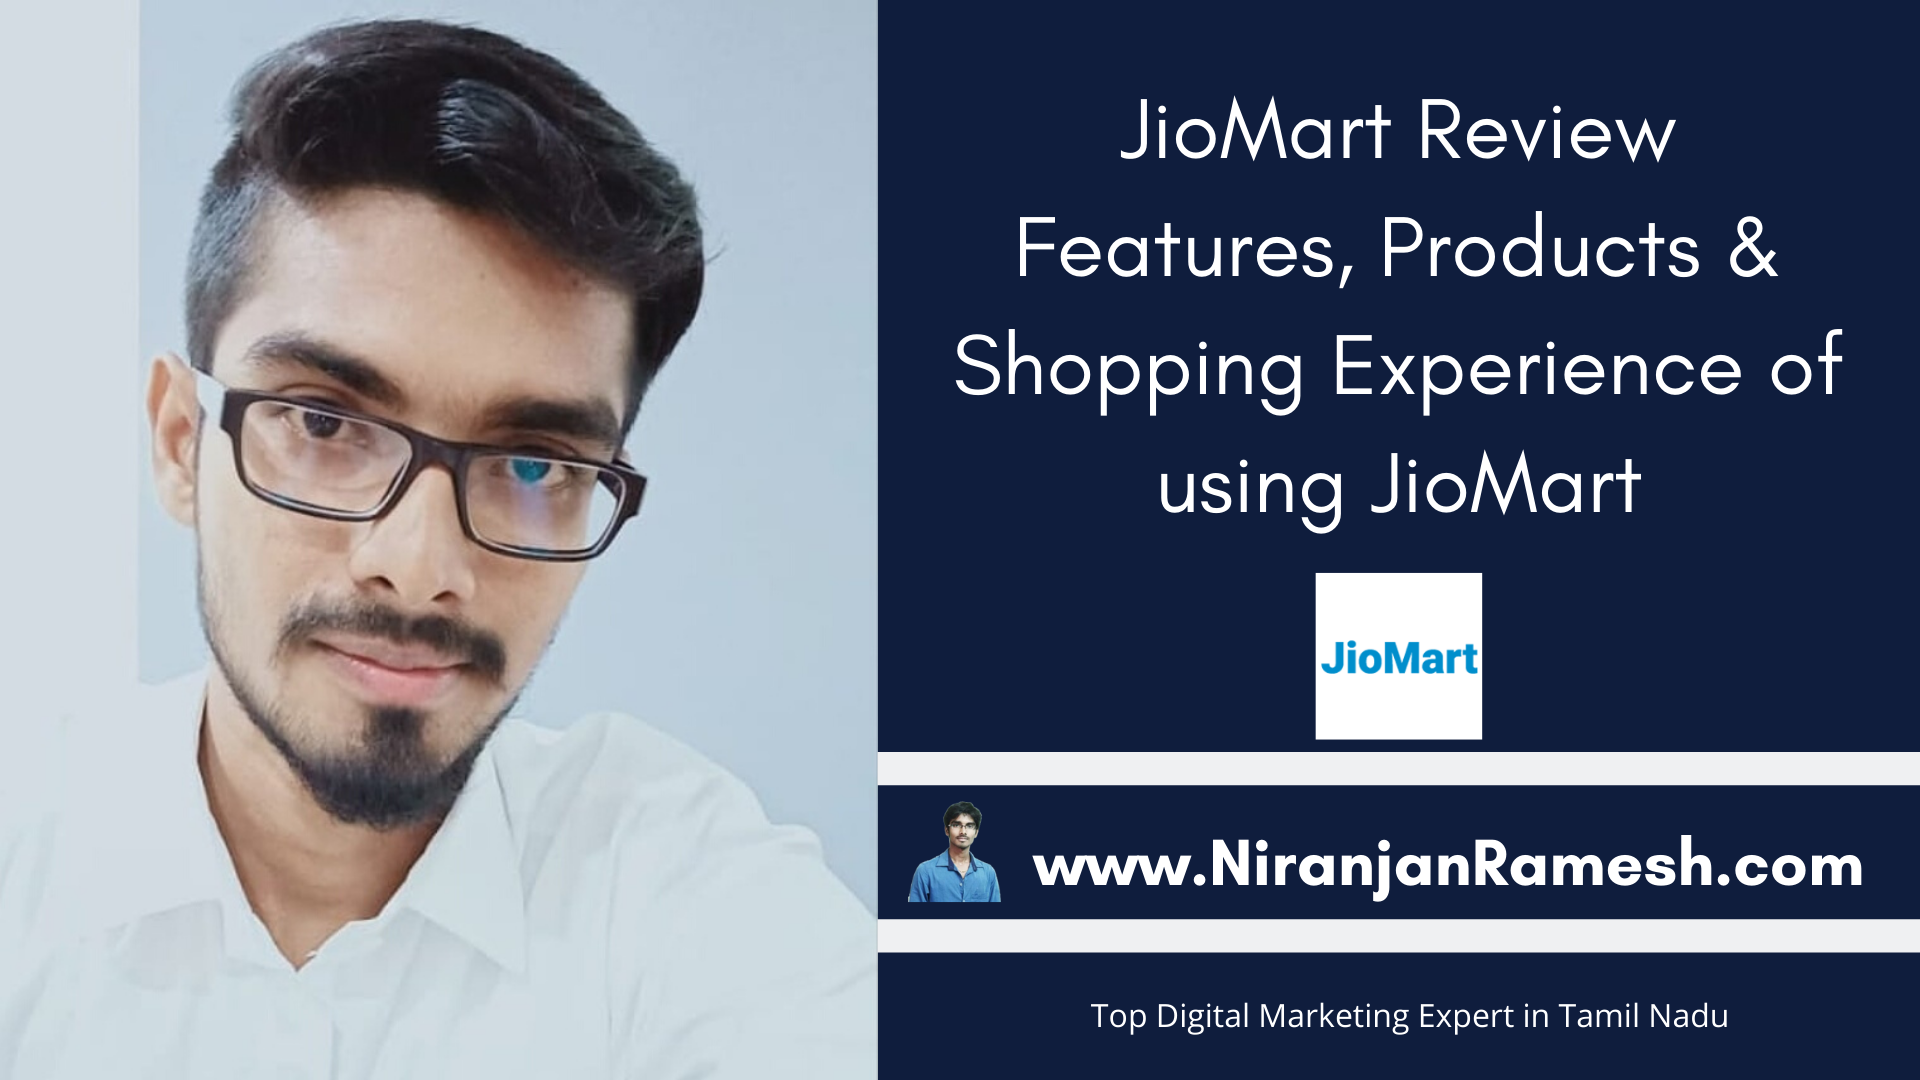 JioMart Review Features Products Shopping Experience of using Reliance JioMart